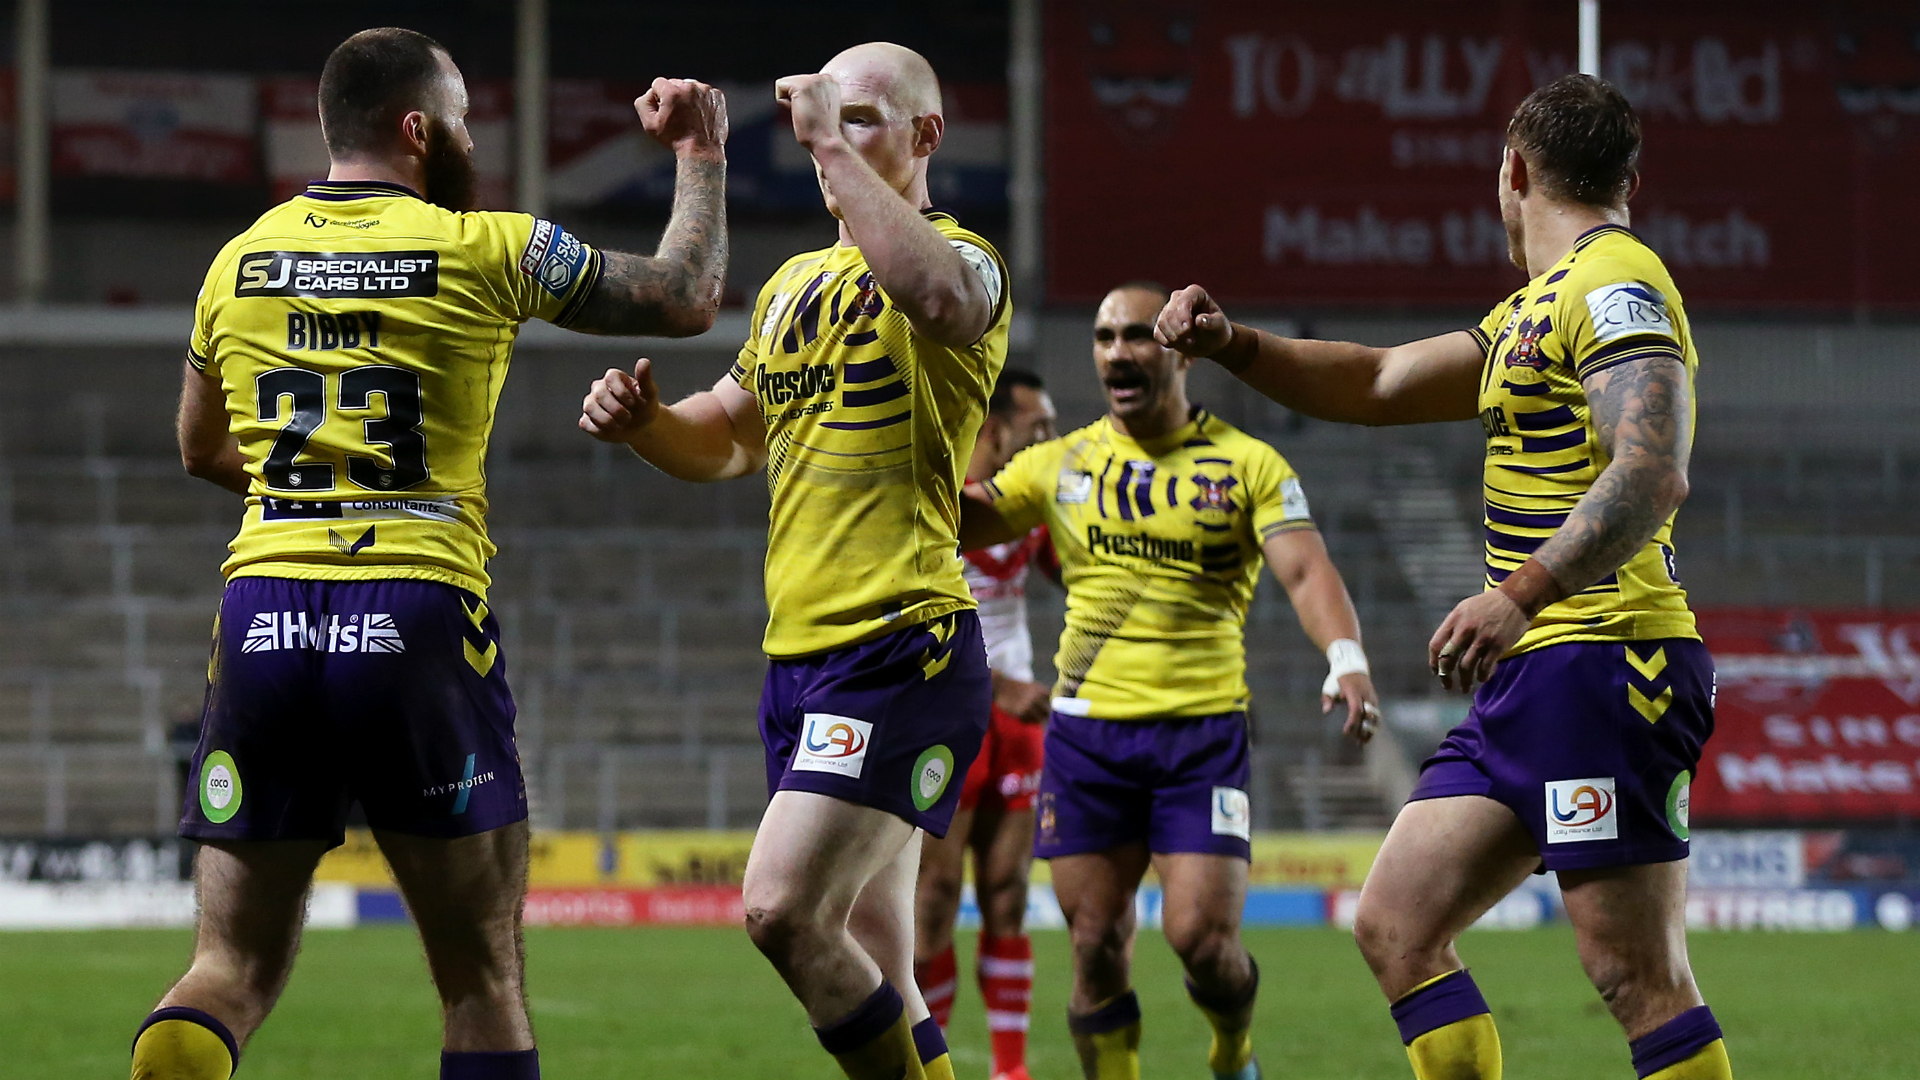 Wigan and Warrington earned important victories in Super League on Friday, with the Warriors moving into first place.